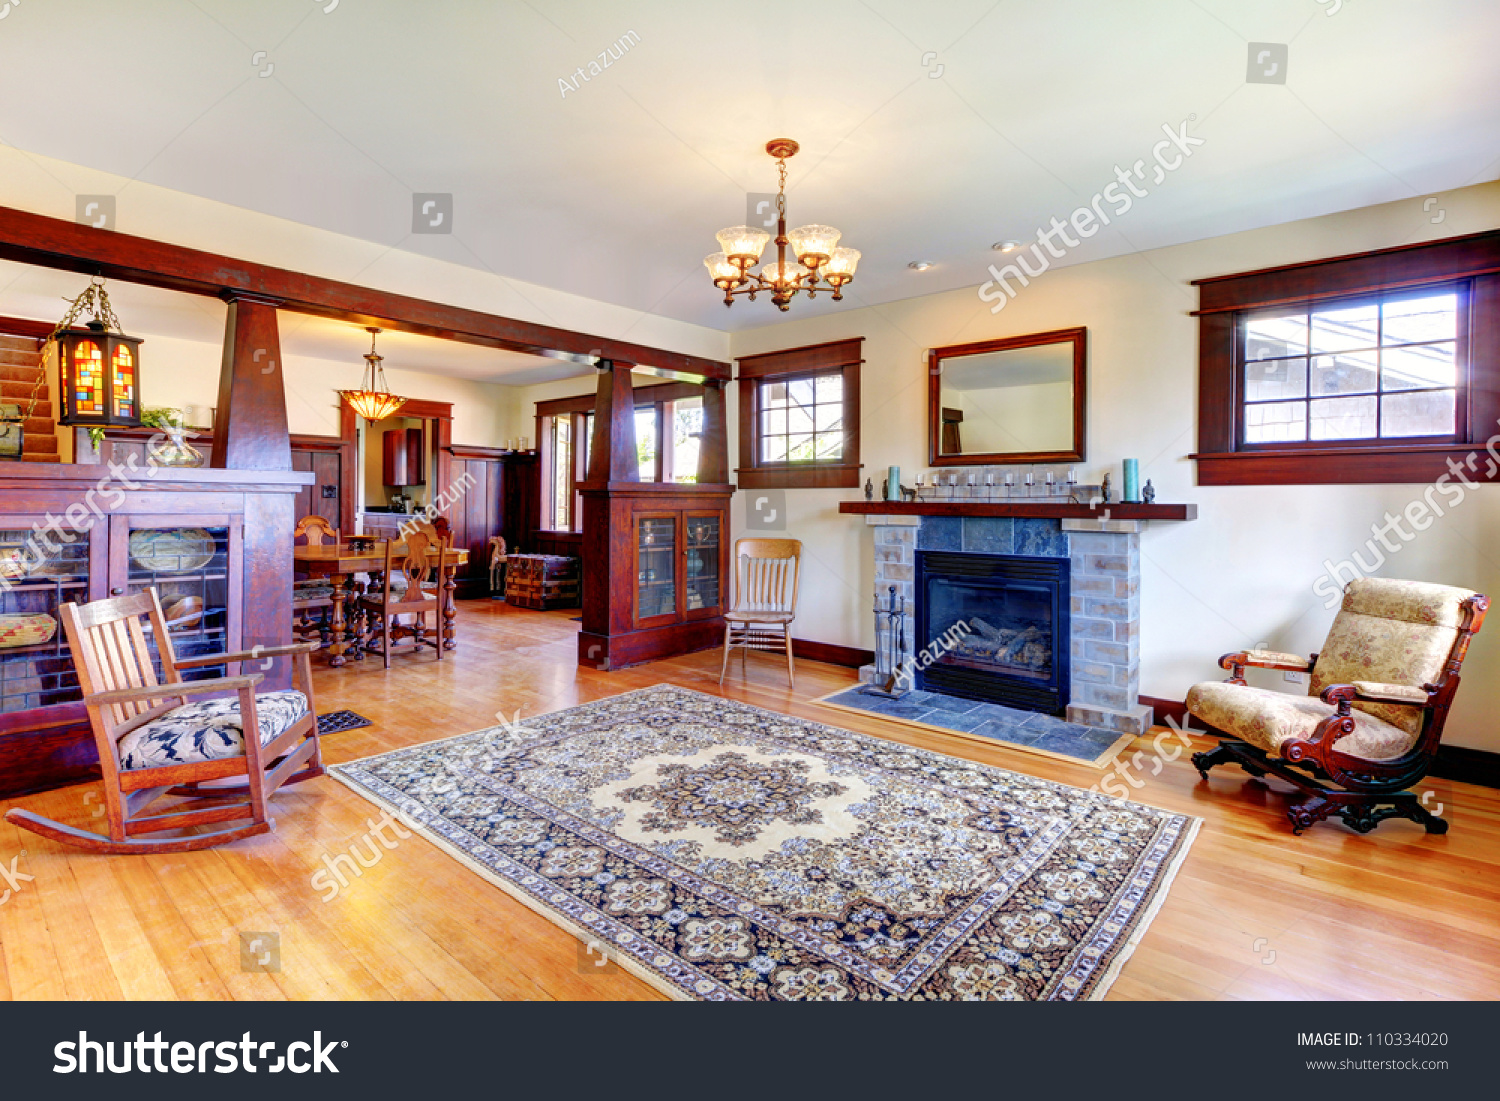 Craftsman style bathroom lighting - Stunning Beautiful Old Craftsman Style Home Living Stock Photo With Craftsman Style Fireplace